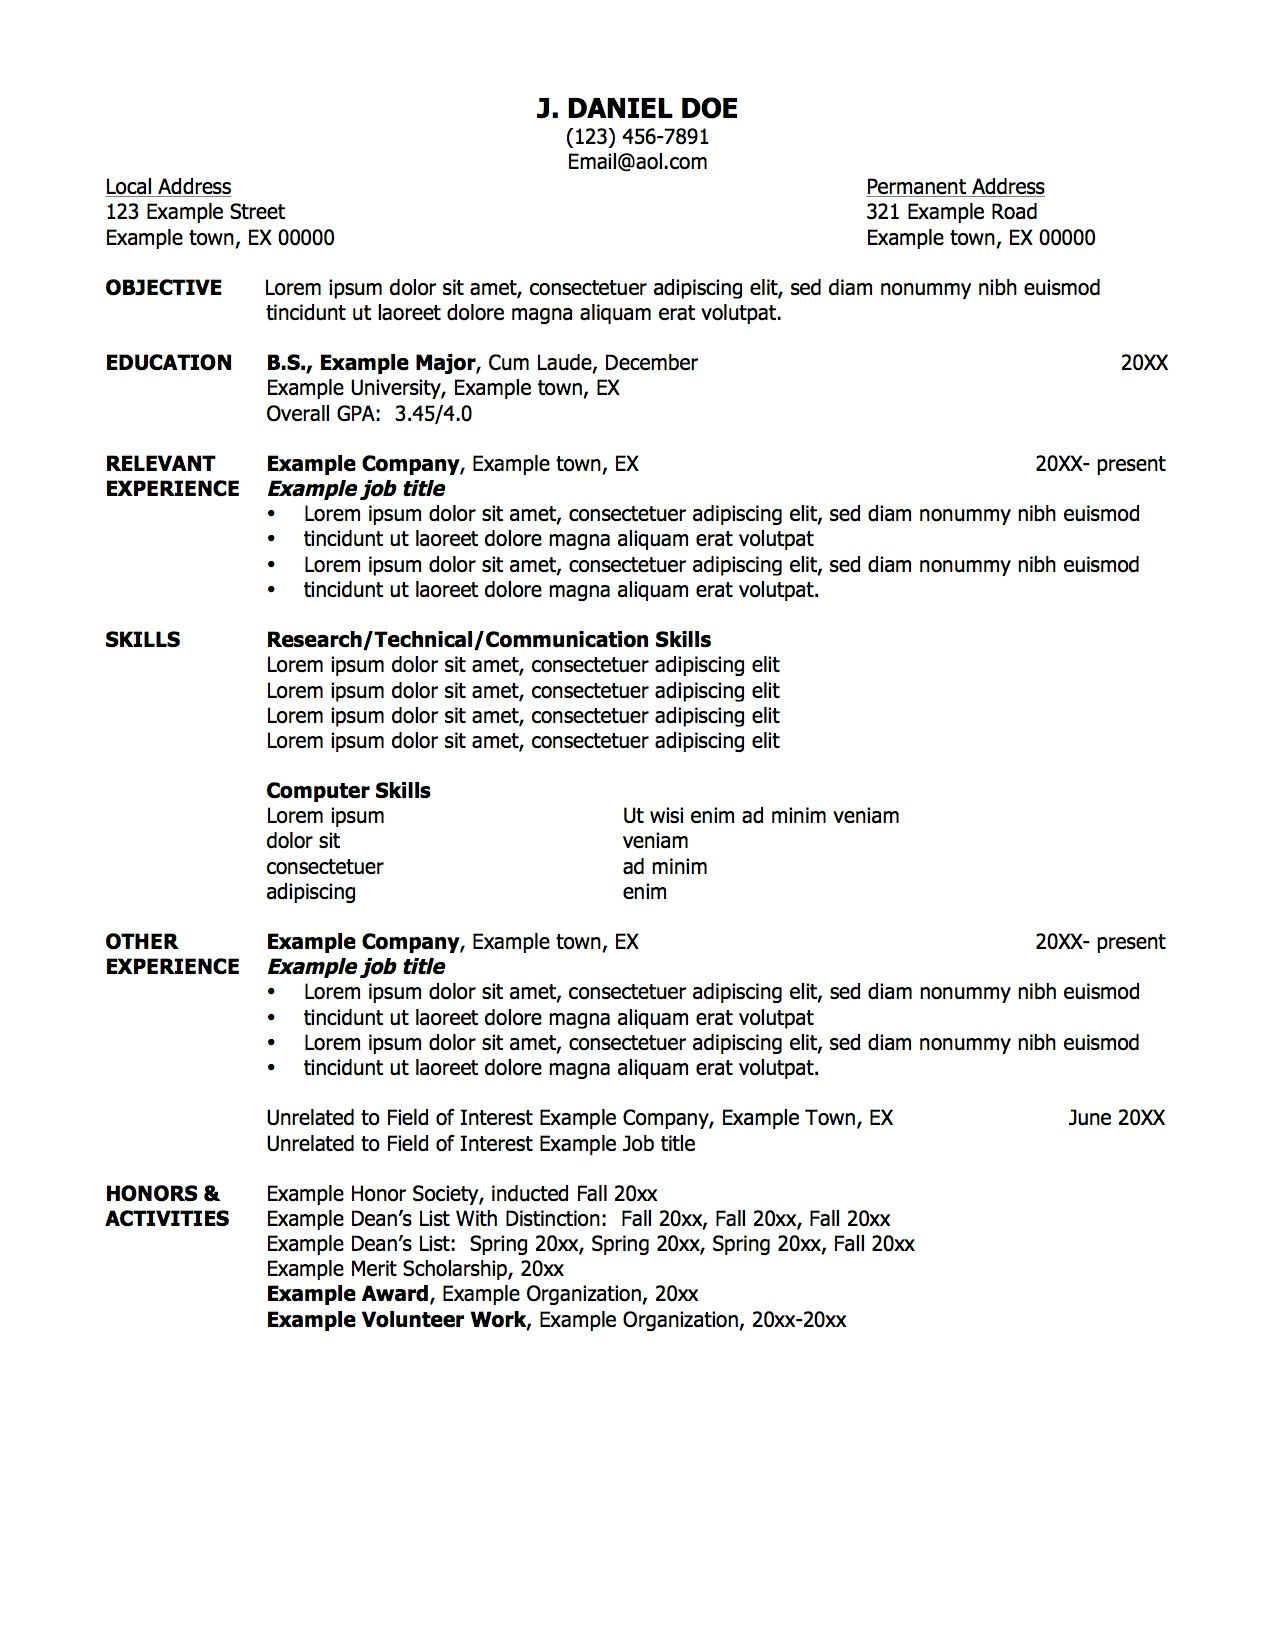 Sample Resume With Professional Title For Job Objective